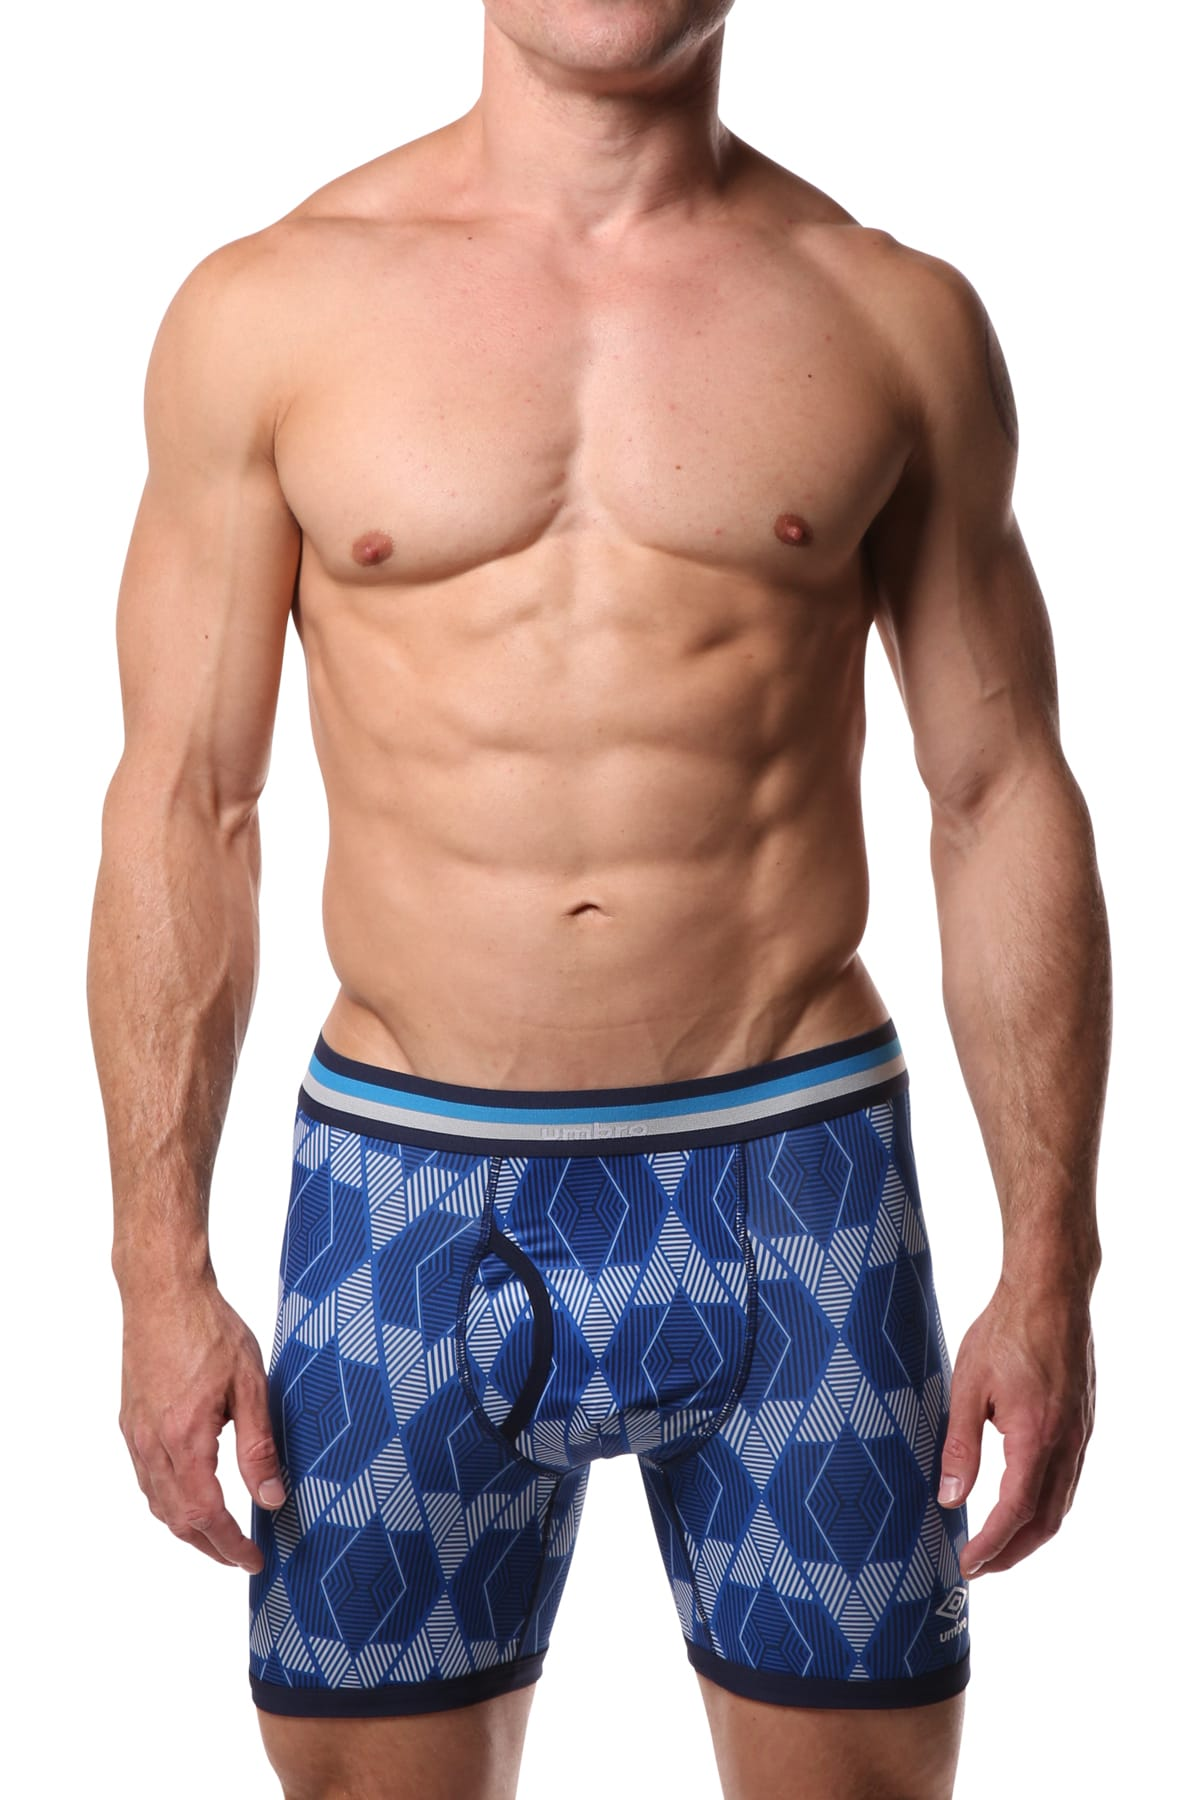 Umbro Blue Triangle Diamond Performance Boxer Brief